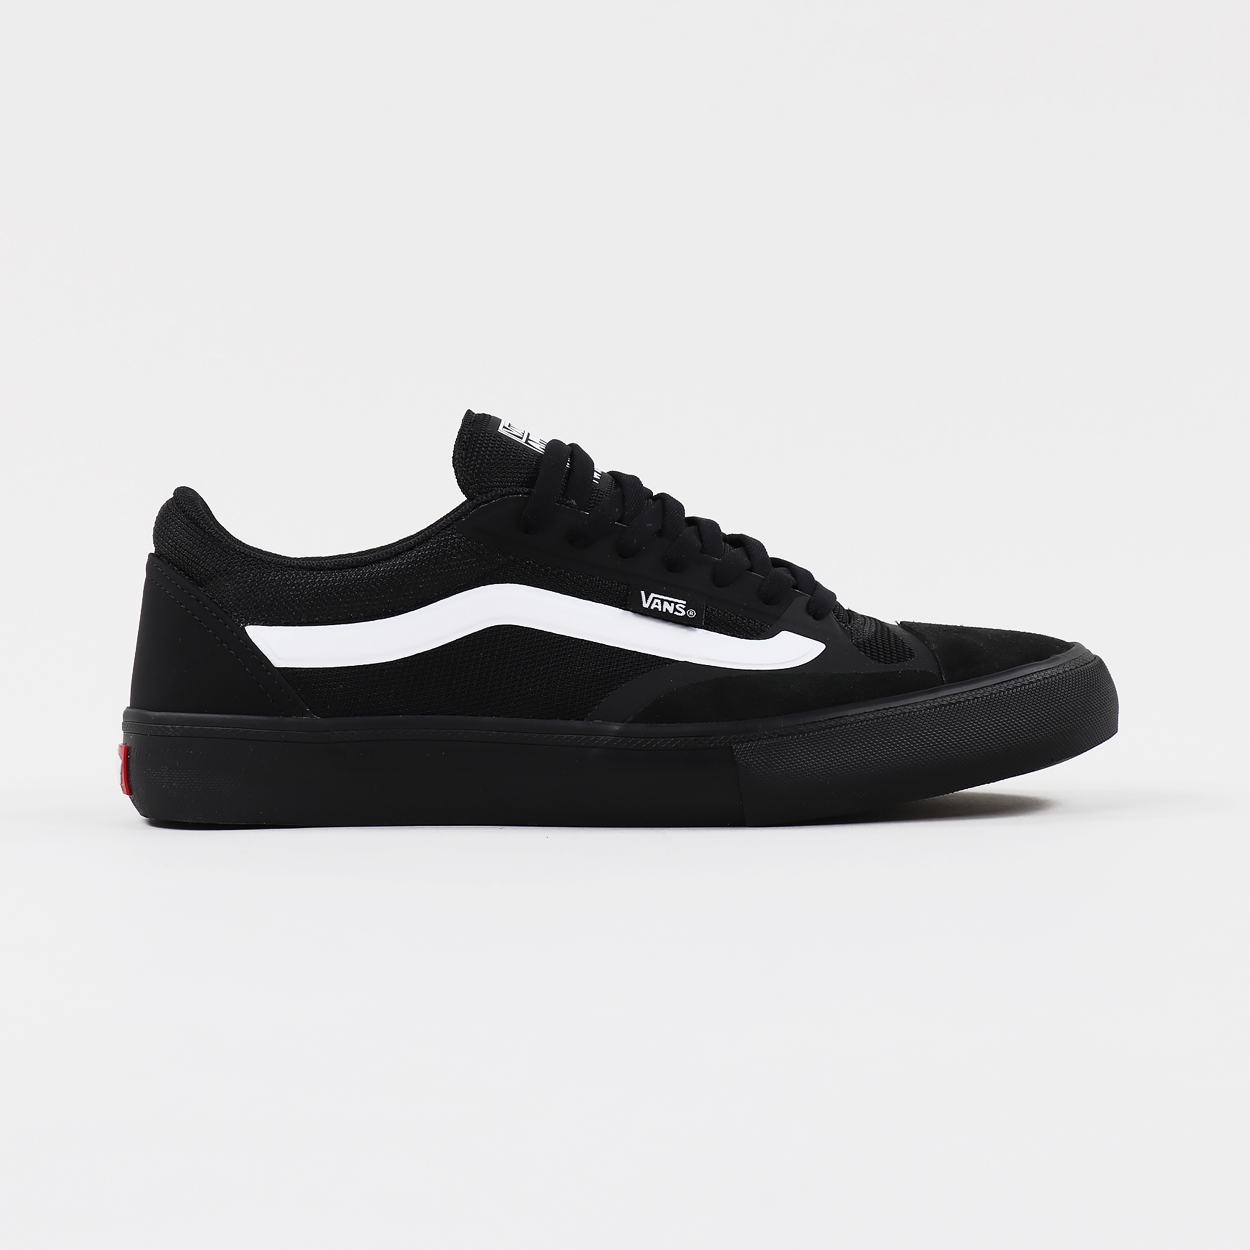 0ab2cad53 A pair of trainers from Vans Pro Skate made from a blend of padded mesh,  laminates and suede. The hardy construction features a big toe panel, ...